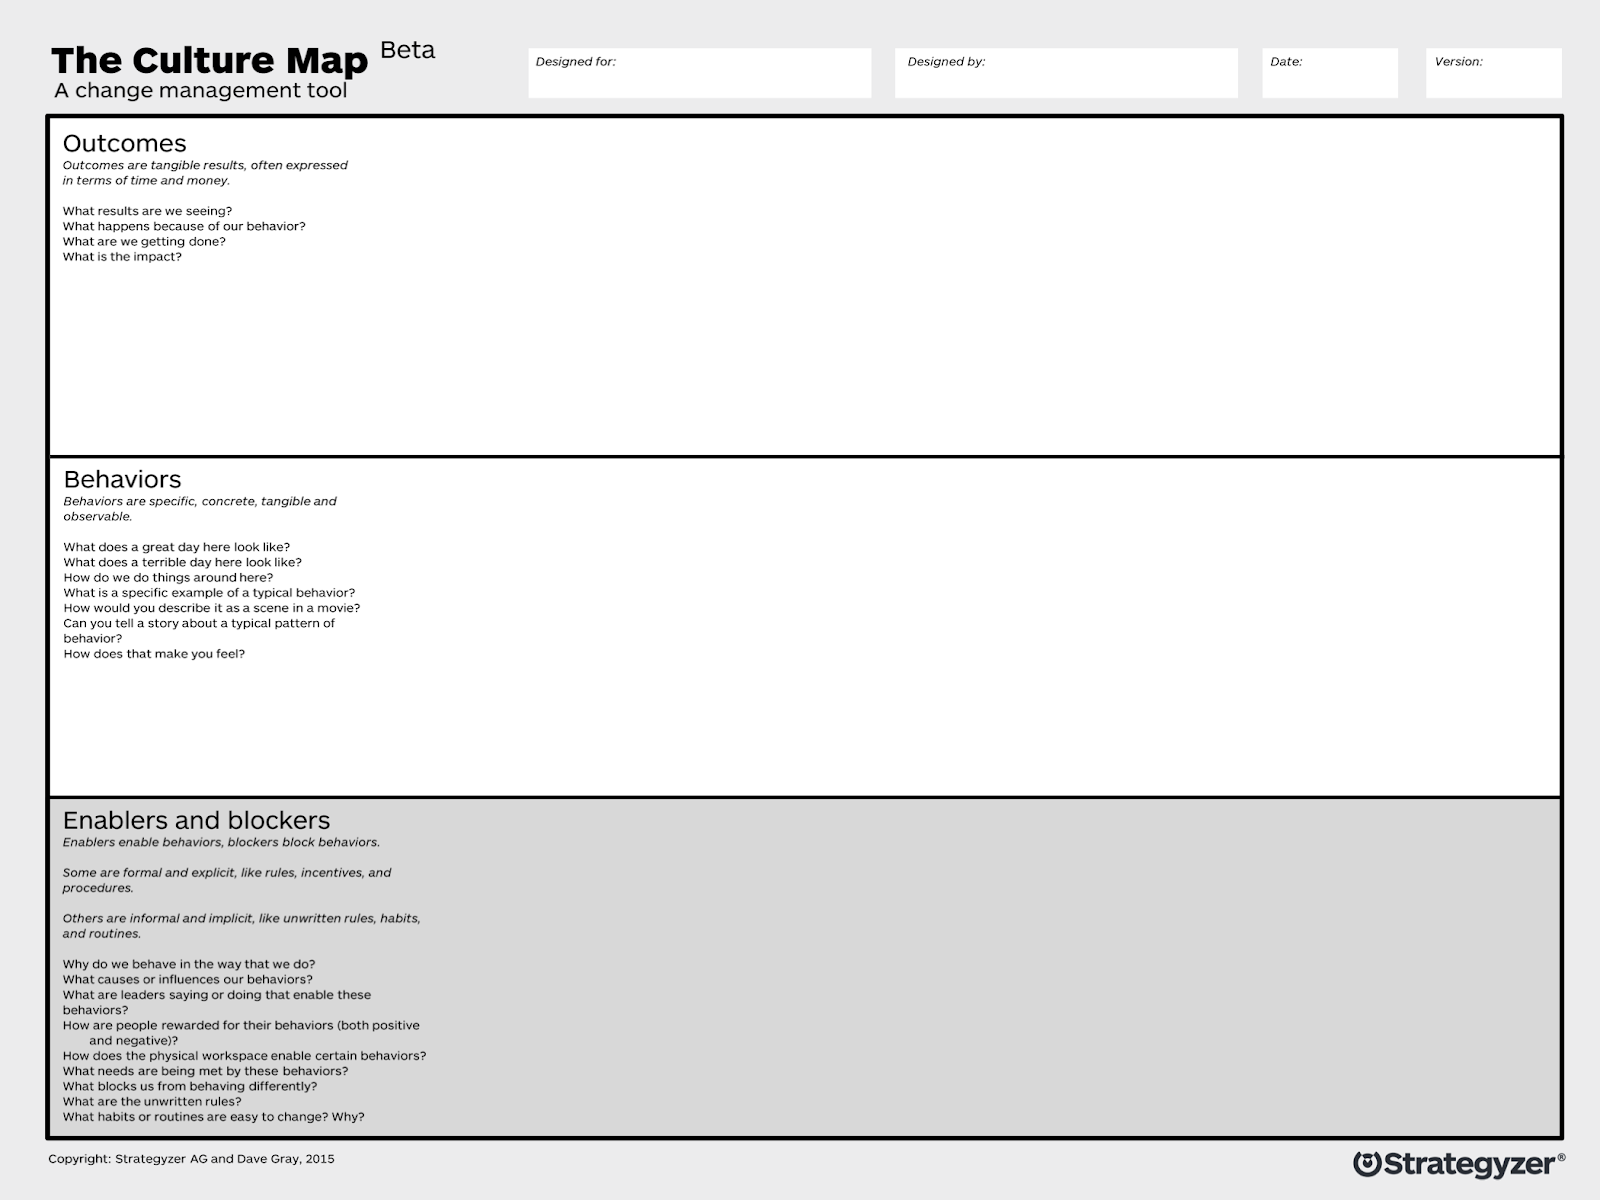 culture-map-v015-with-questions1.png